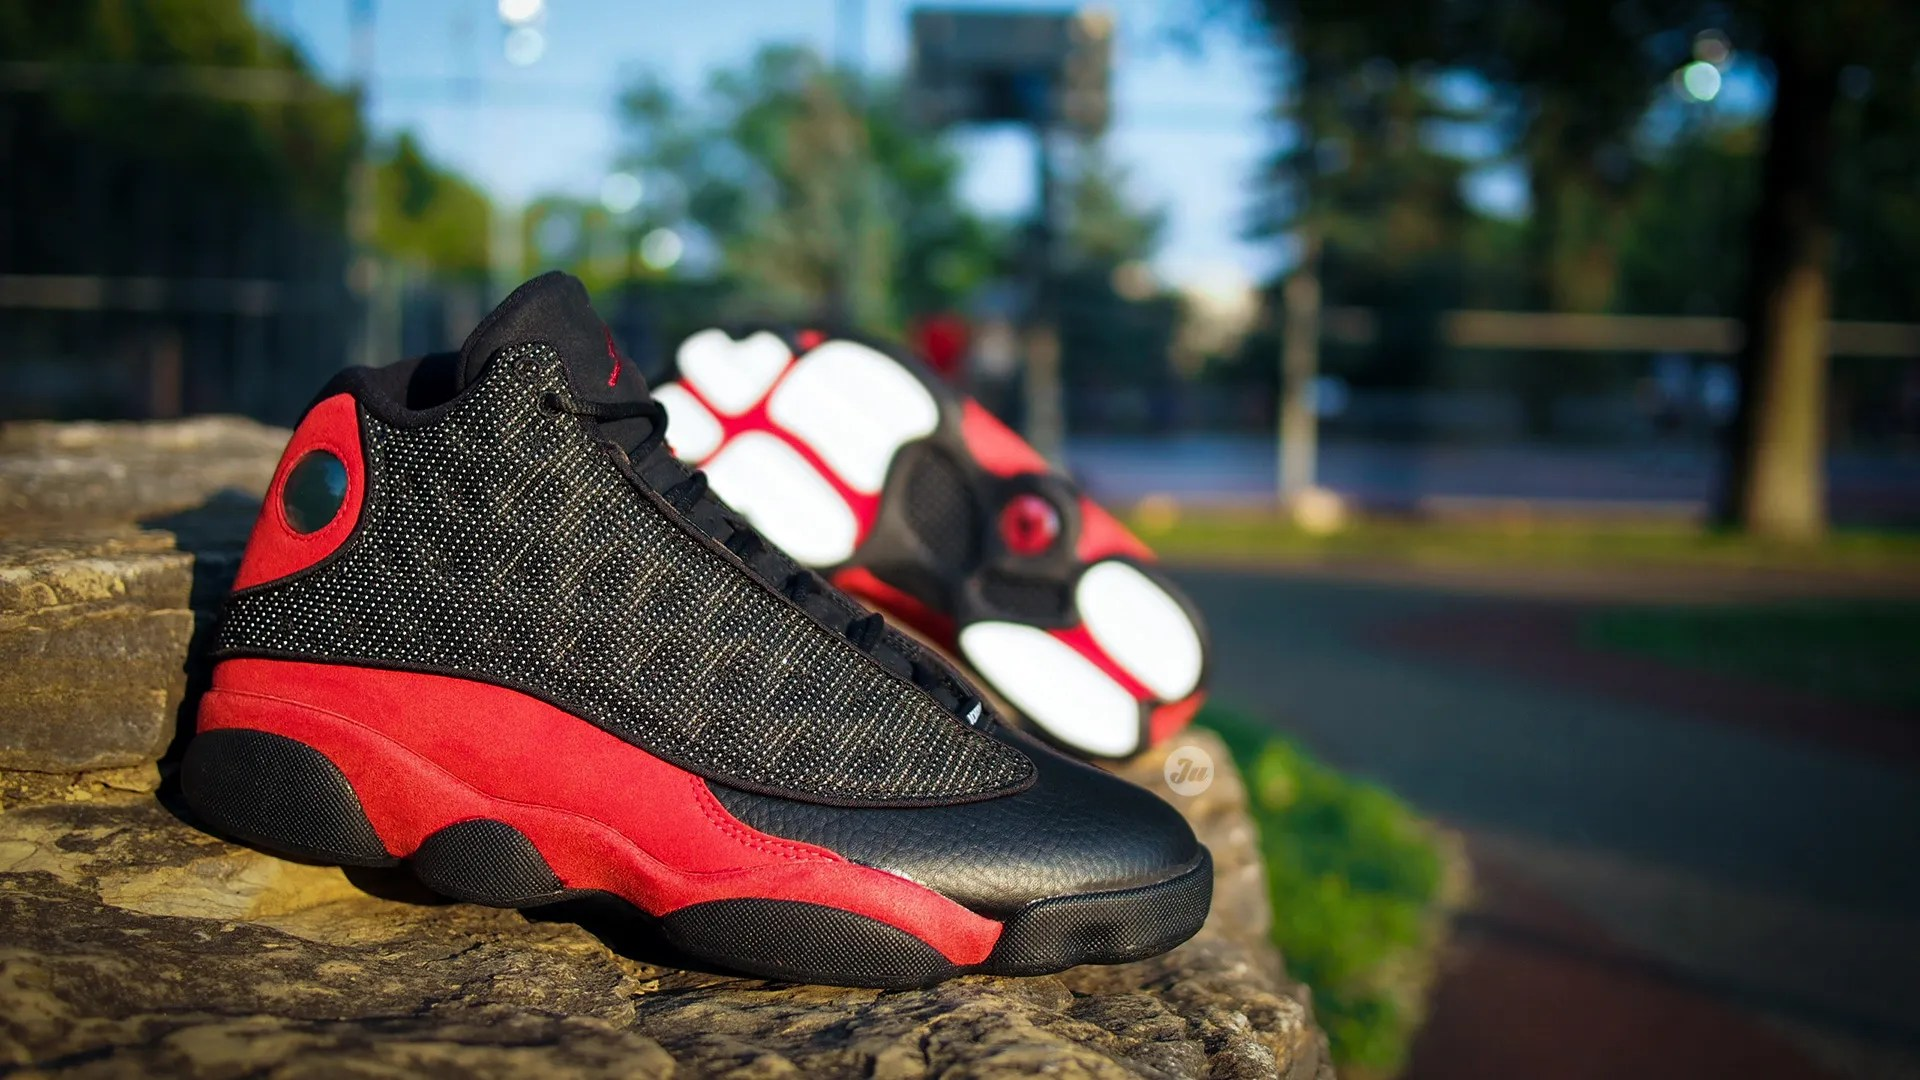 On-feet photos and video of the recently released Air Jordan XIII Bred (2017 bc8cd9767